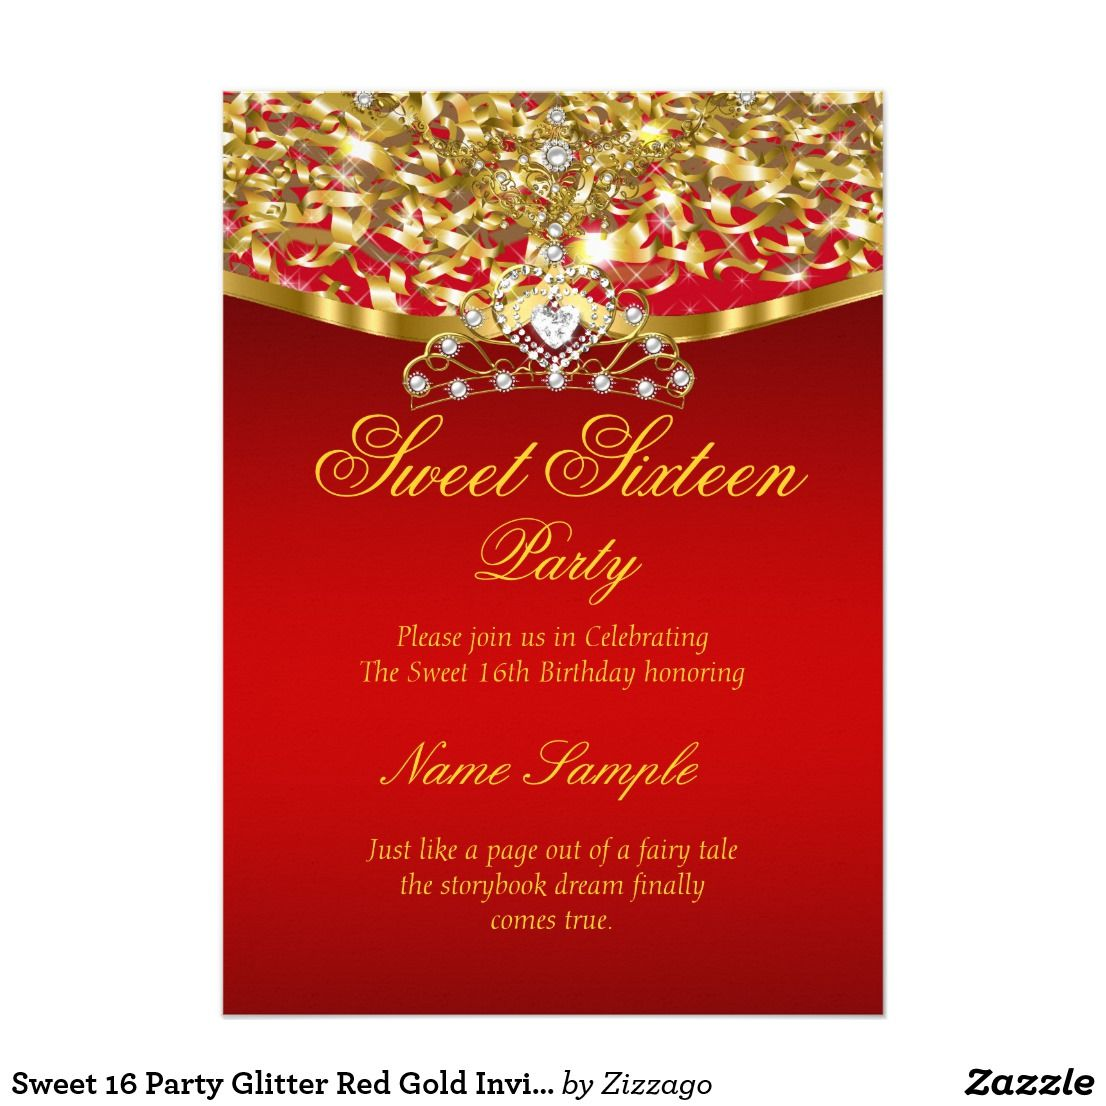 Sweet 16 Party Glitter Red Gold Invitation Zazzle